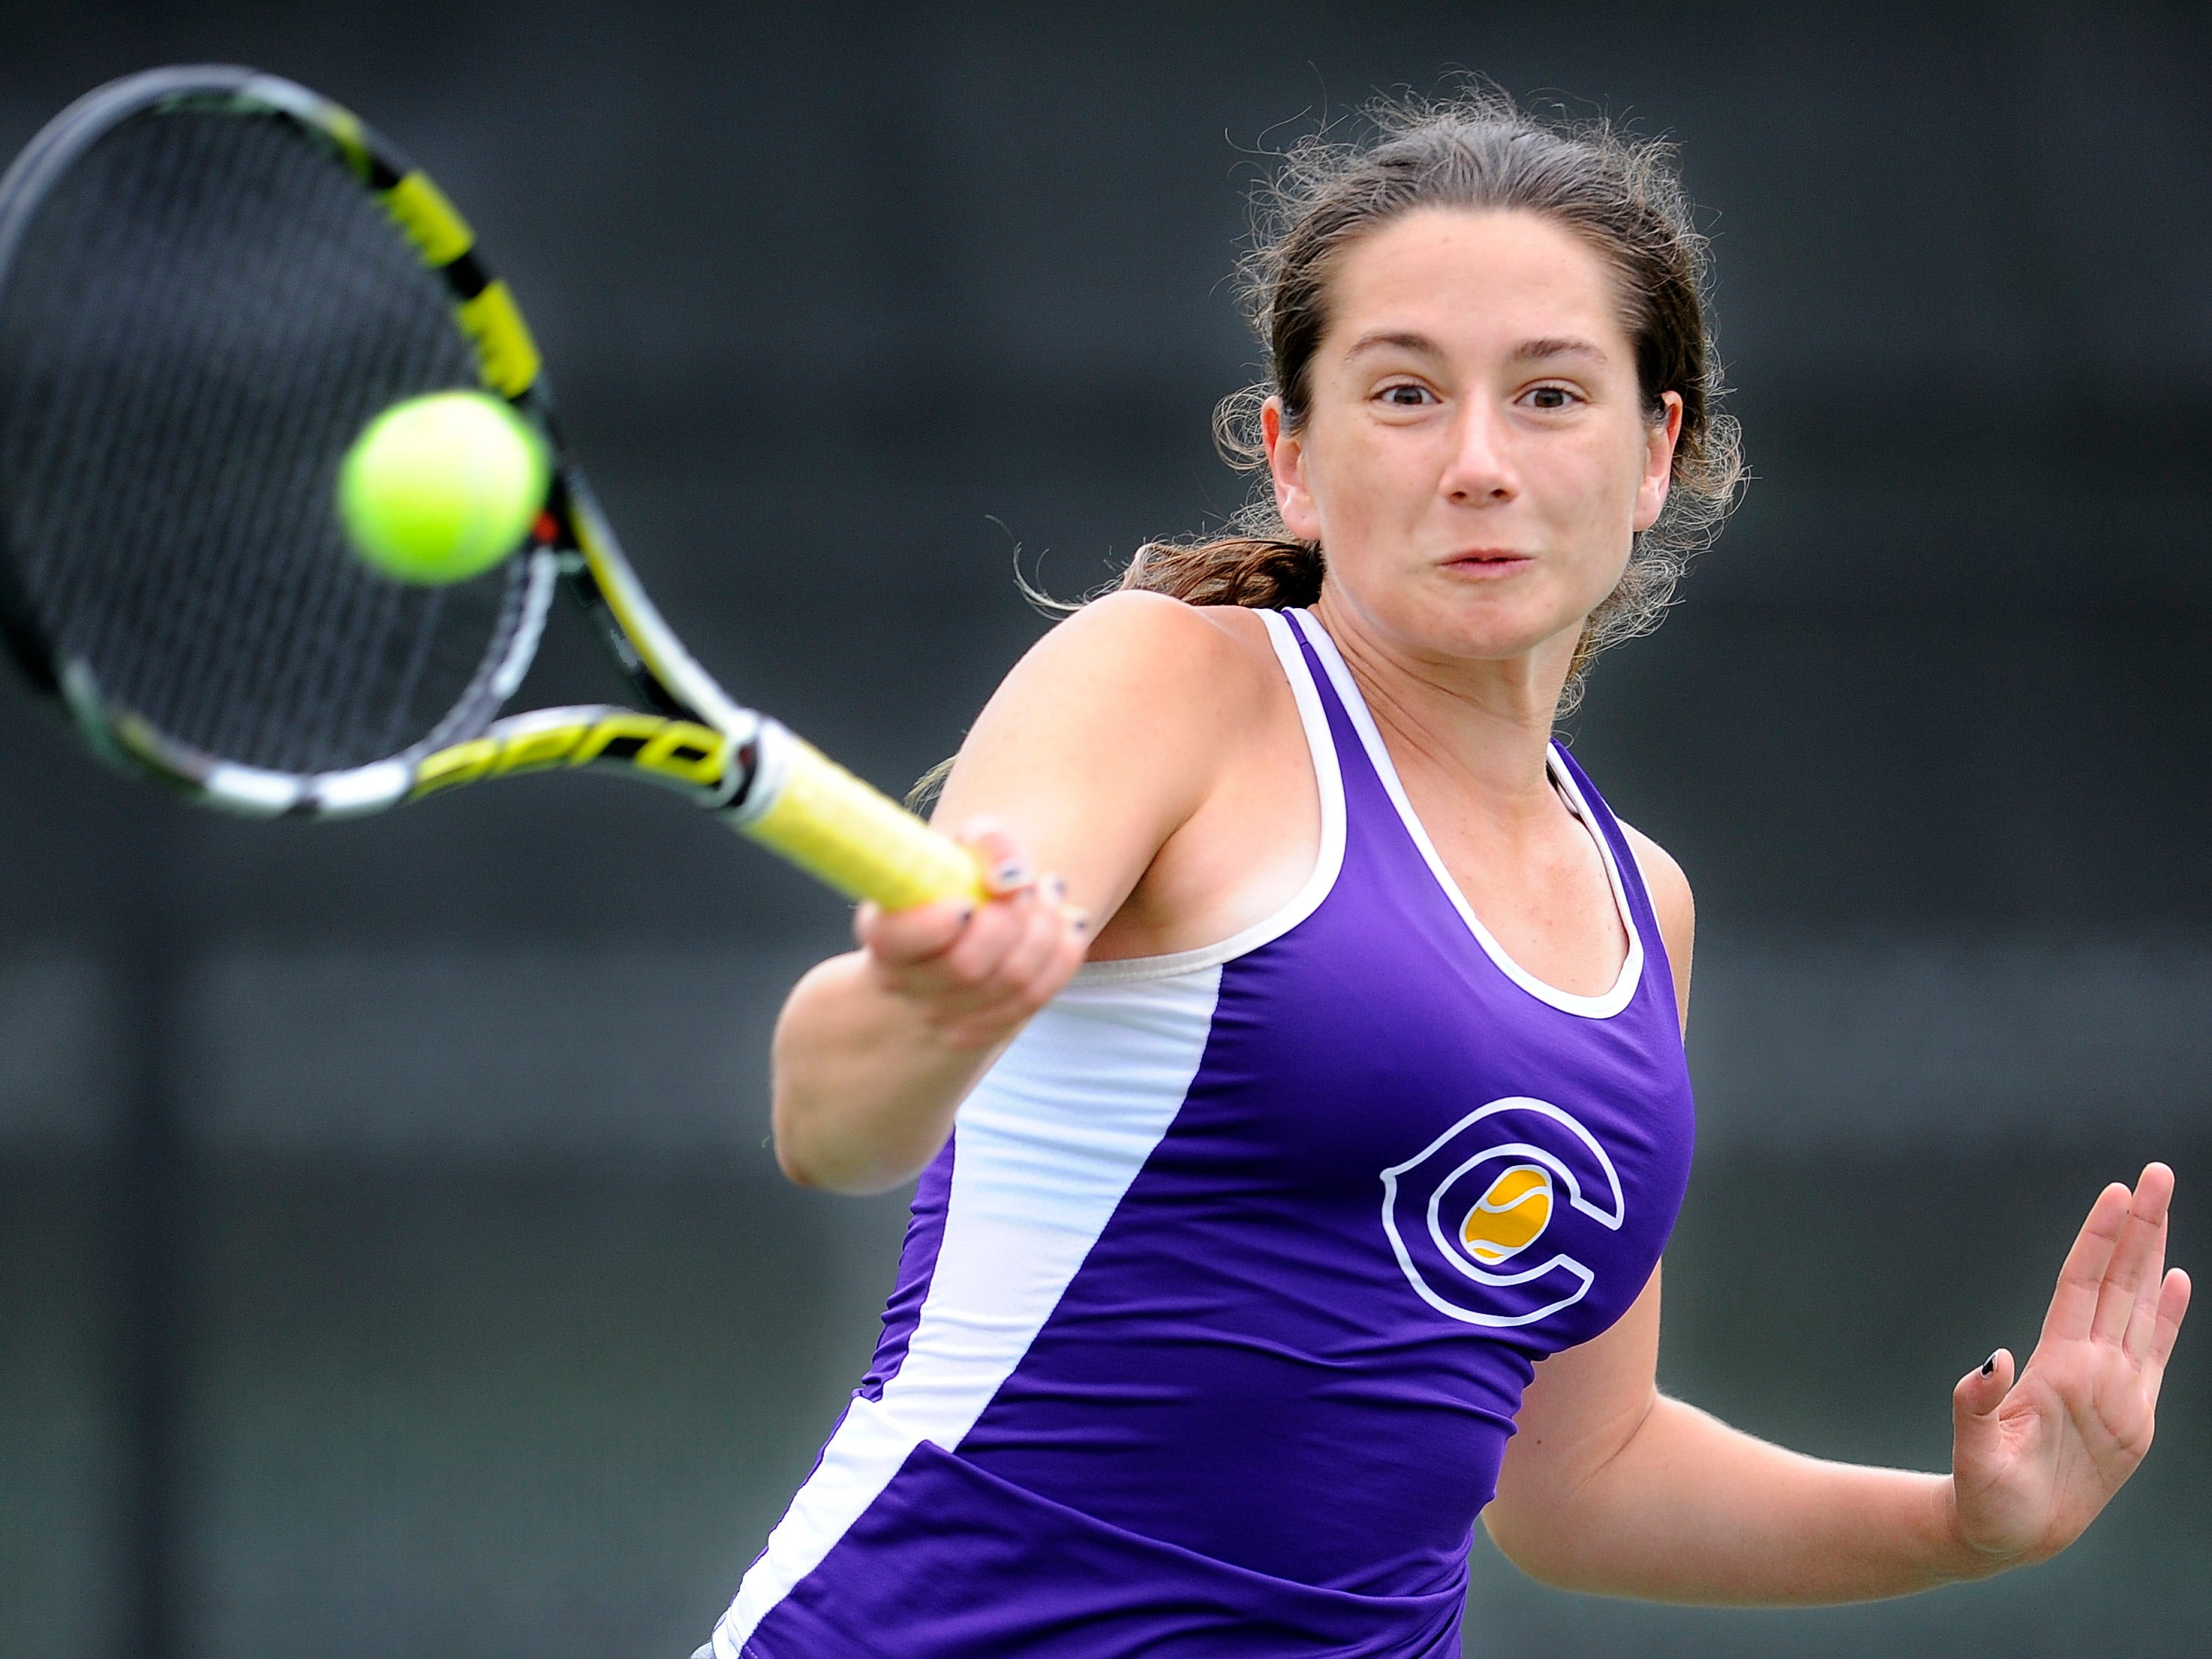 Clarksville's Sofia Phillips returns a shot during her AAA match against Hardin County's Julia Mazanek. Phillips won the match to move to the semifinals.